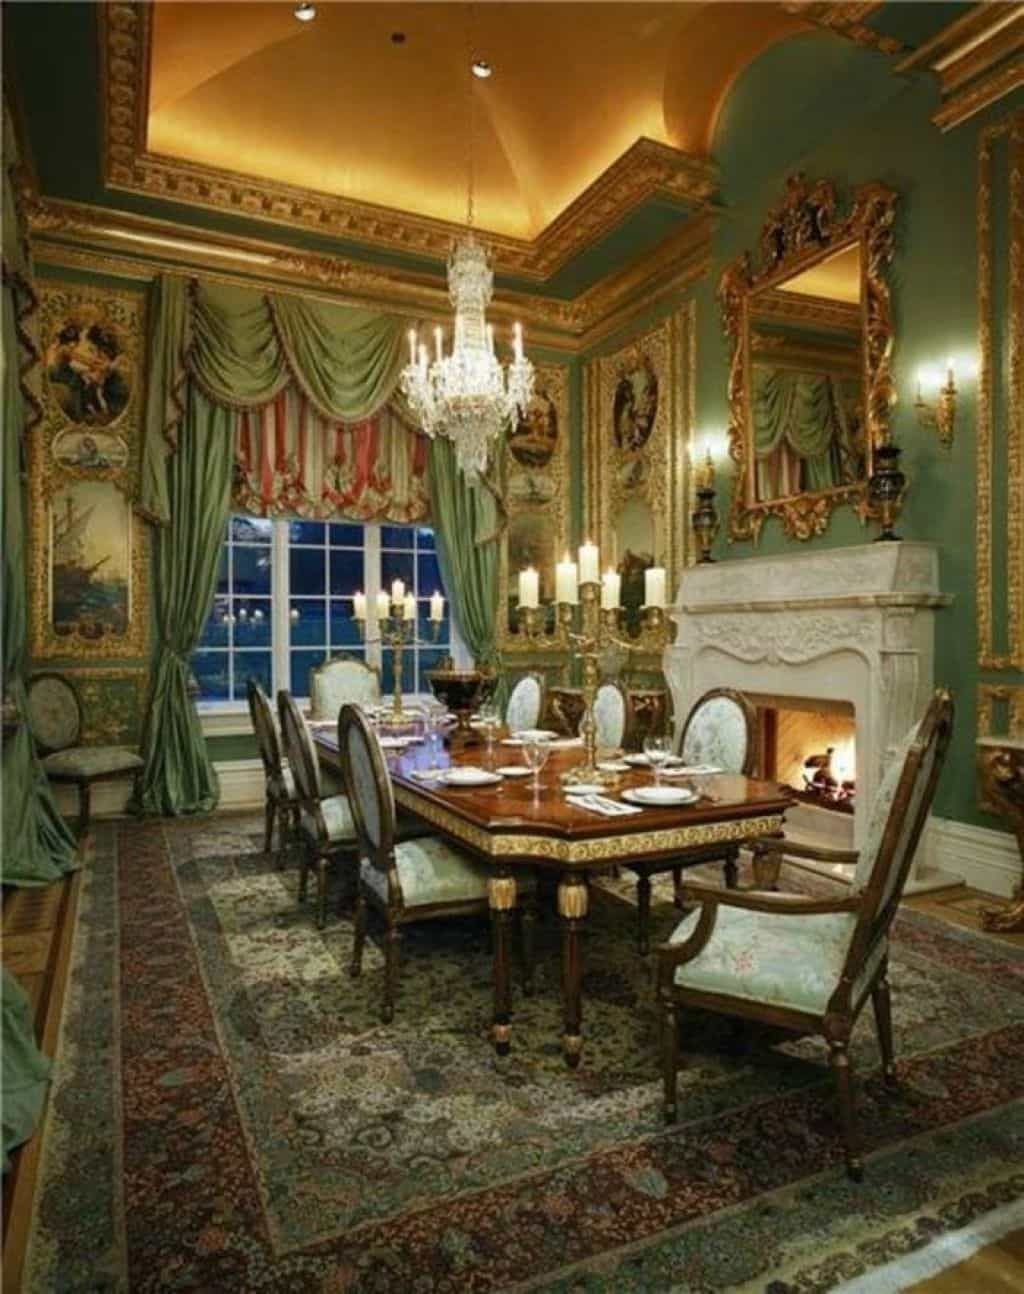 11 Amazing Wall Mirror Design For Dining Room Victorian Interior Design Dining Room Victorian Gothic Interior